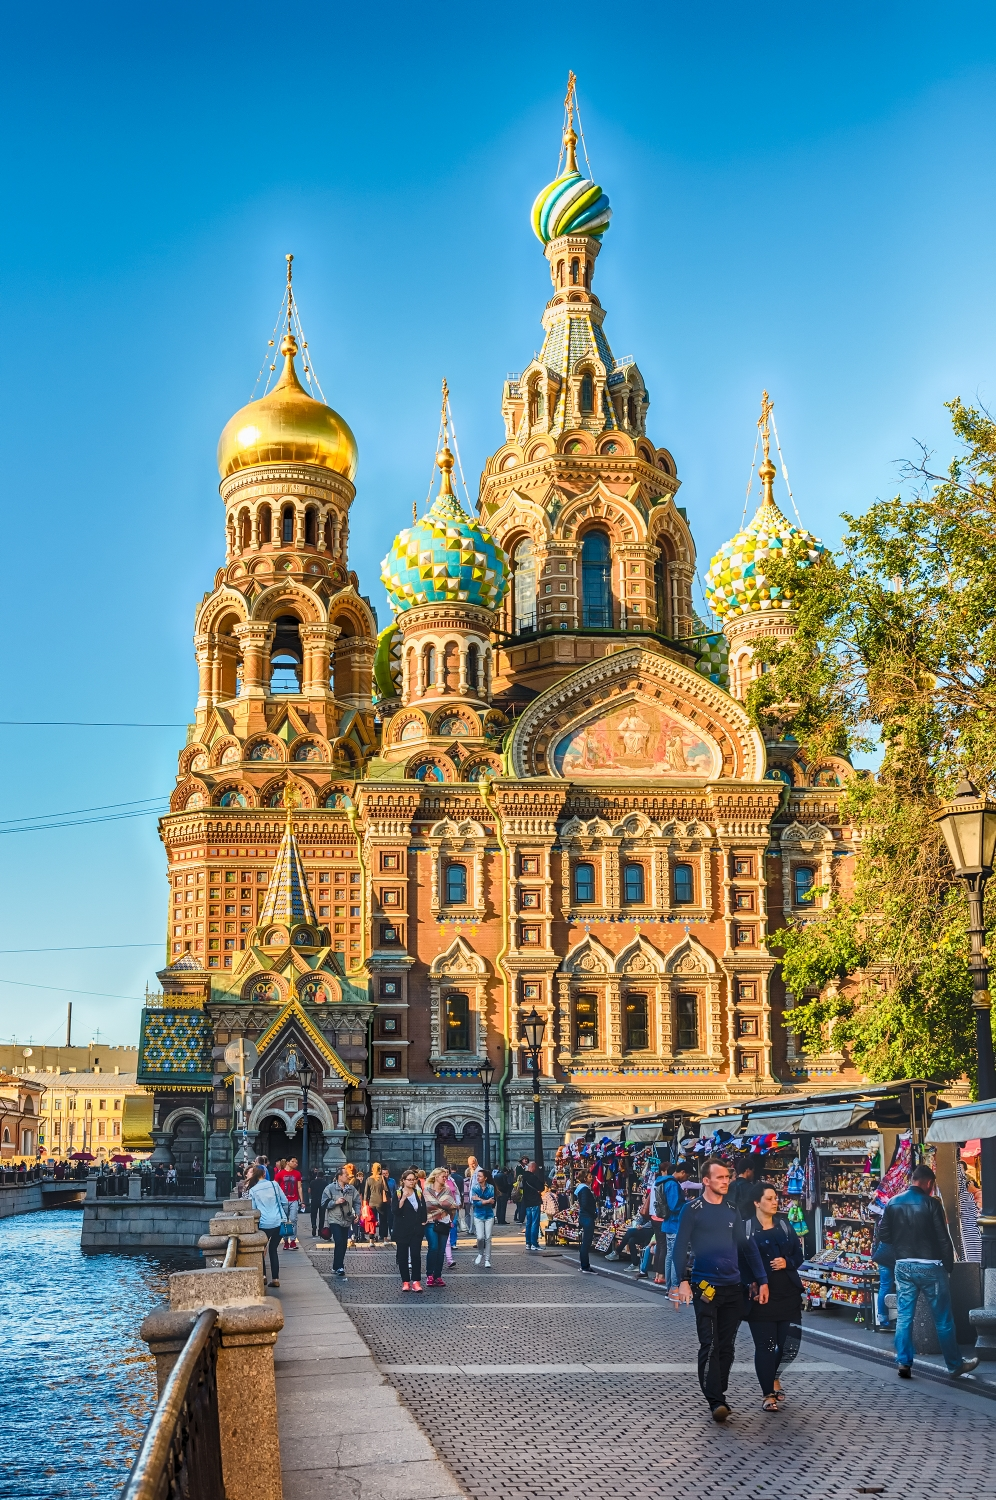 Church of the Savior on Spilled Blood over the Griboyedov Canal Embankment, St. Petersburg